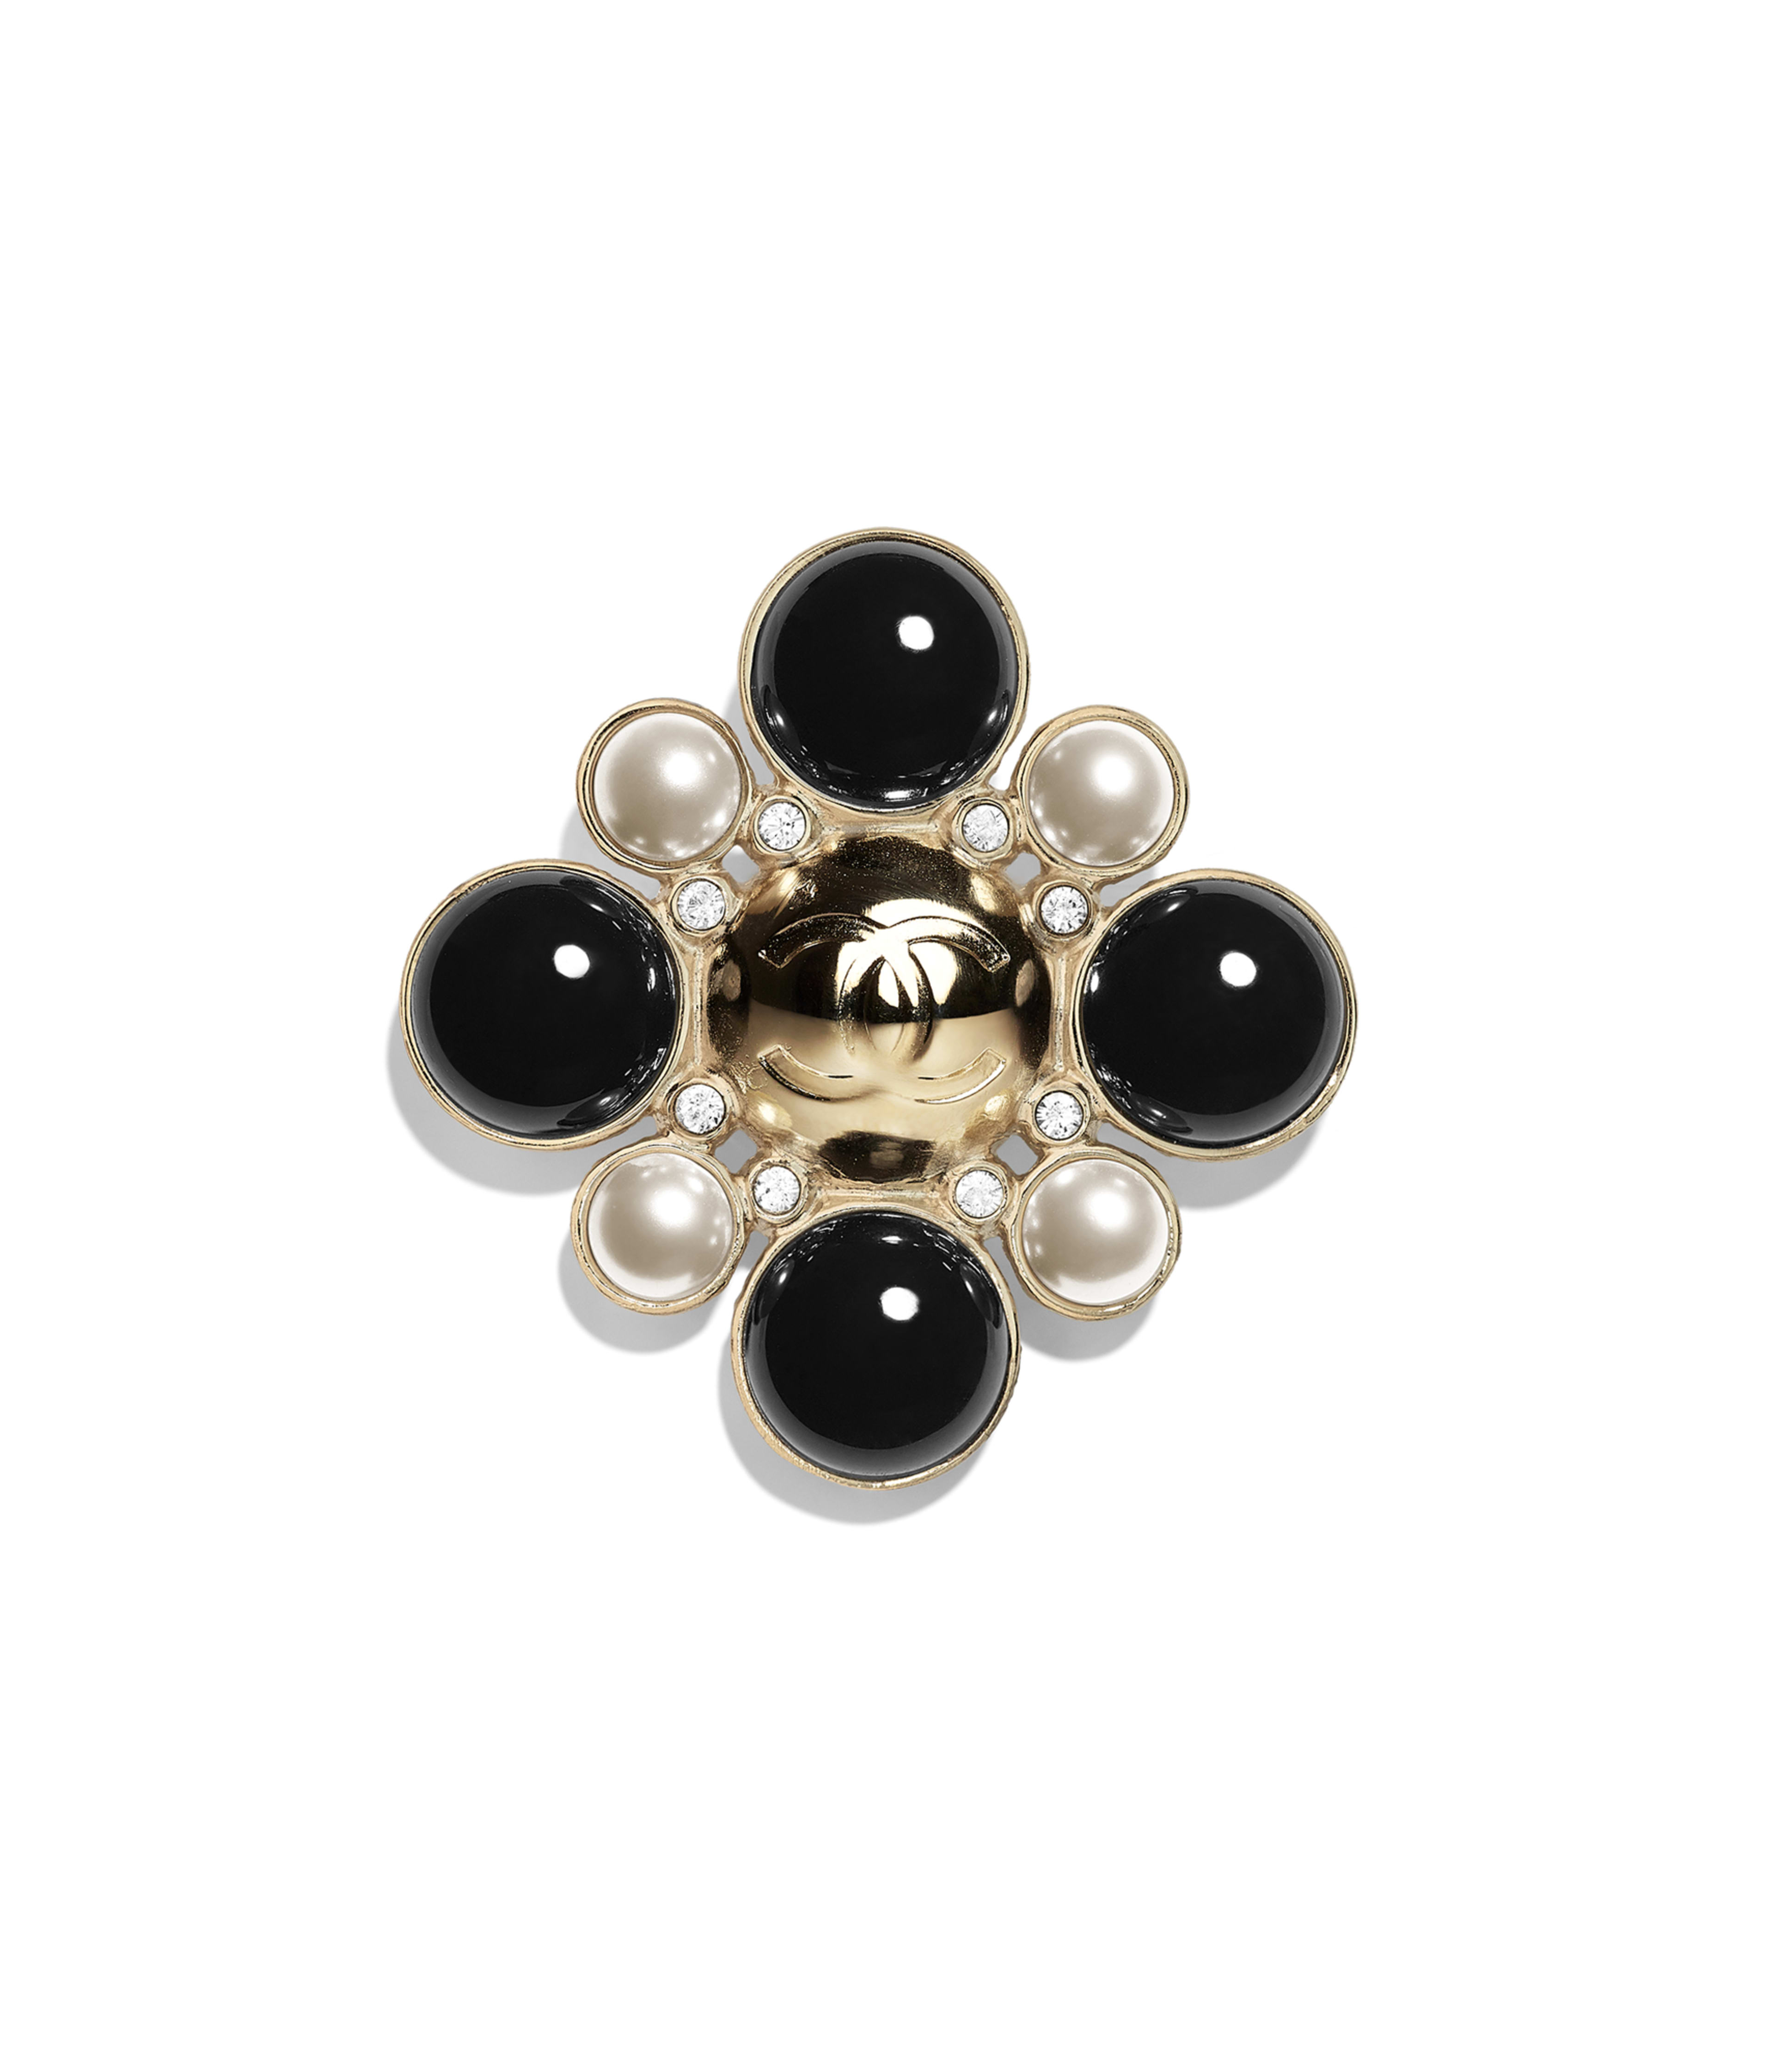 f2dc90ca7 Brooch Metal, Glass Pearls, Imitation Pearls & Strass, Gold, Pearly White,  Black & Crystal Ref. AB2362Y47807Z9232